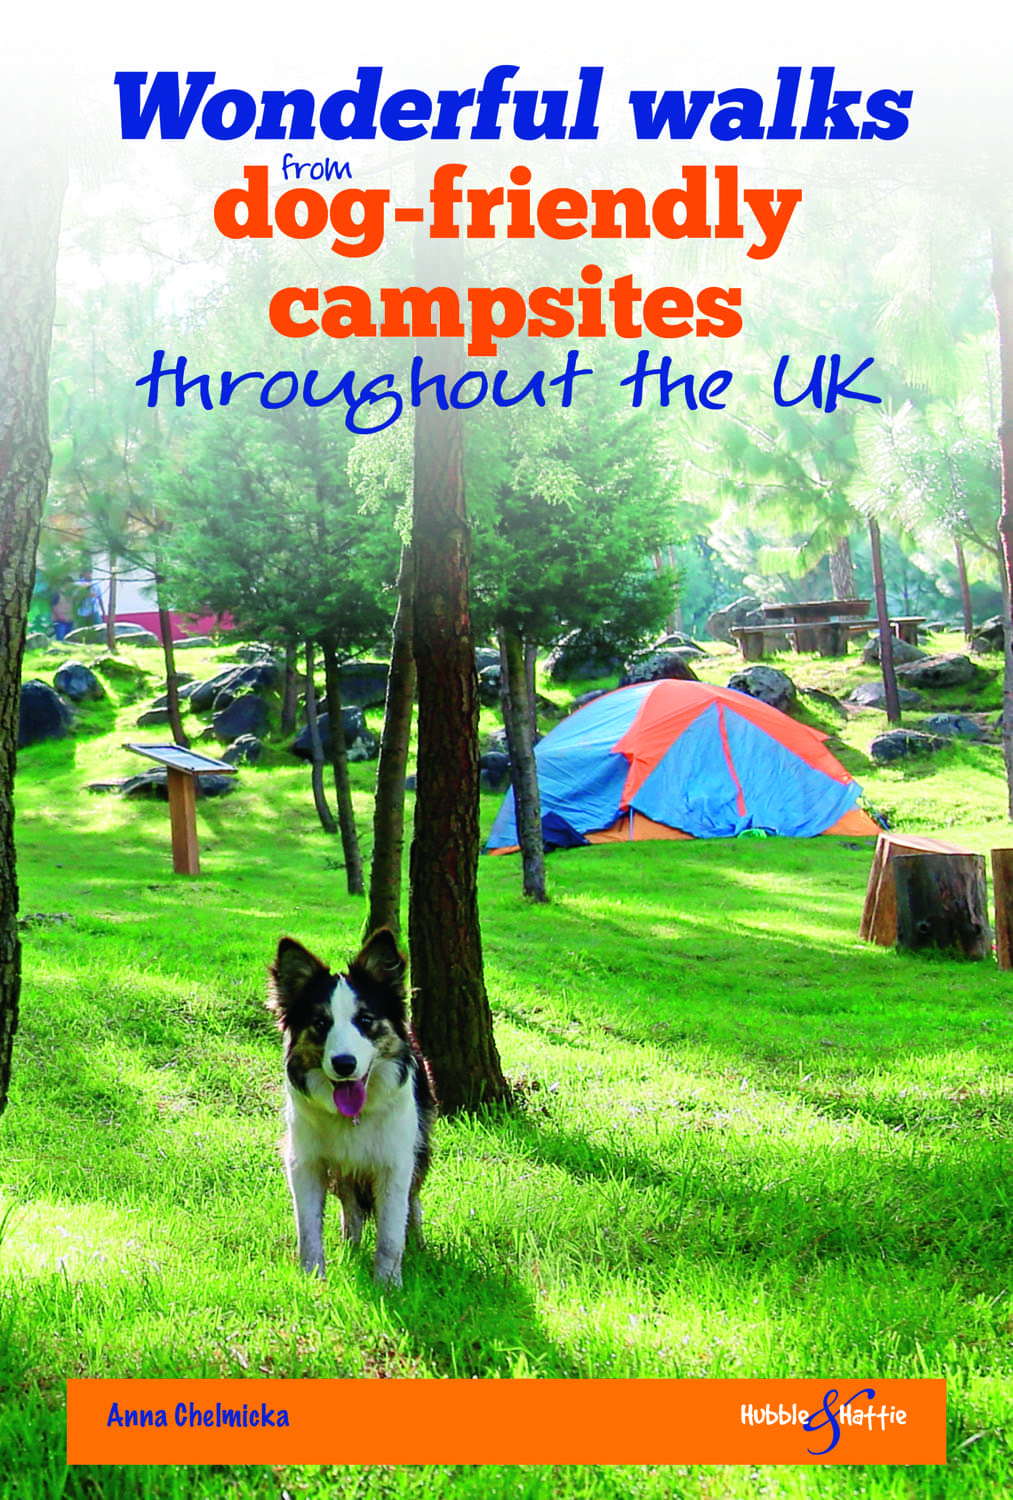 Wonderful walks from Dog-friendly campsites throughout the UK cover